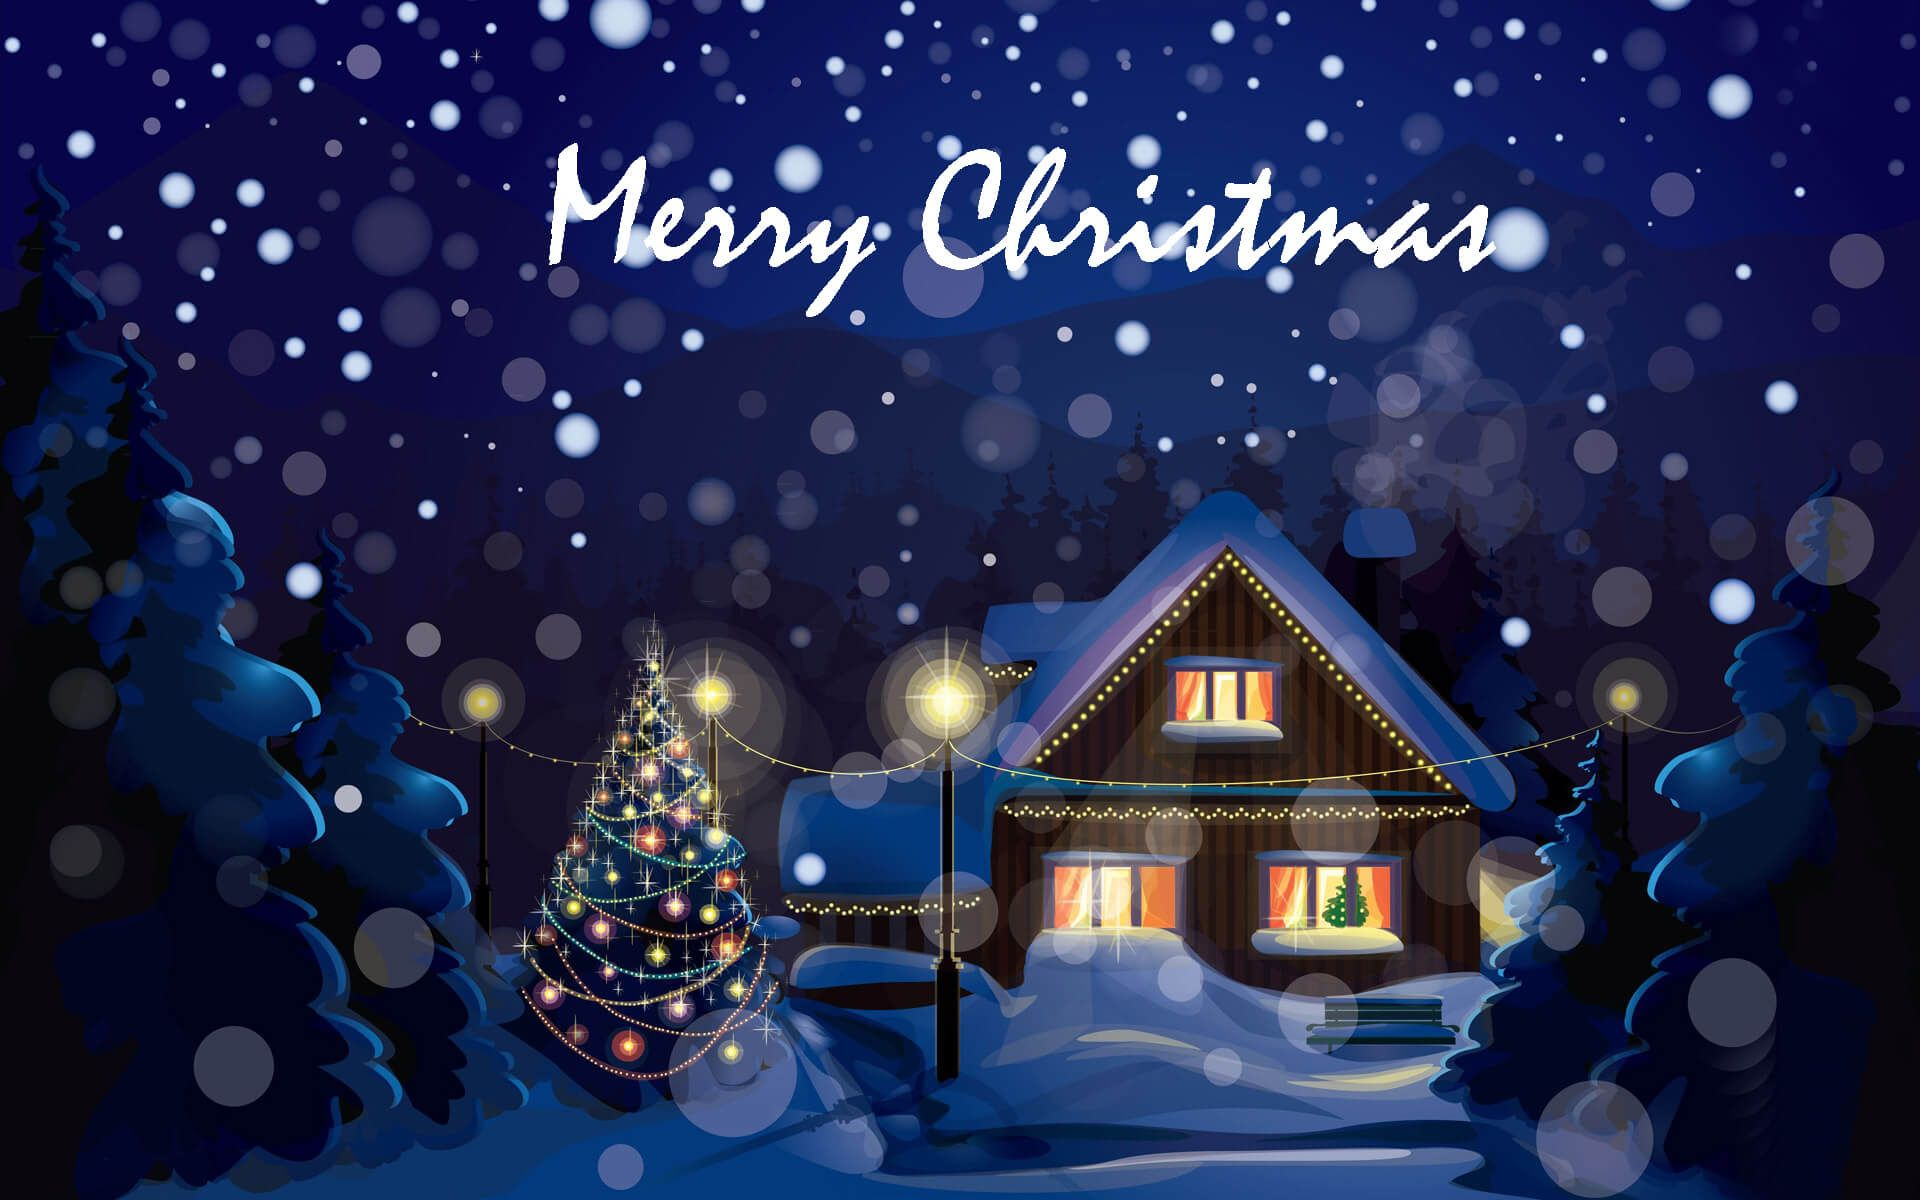 Merry Christmas Images Hd.Pin On Merry Christmas Wishes Pics